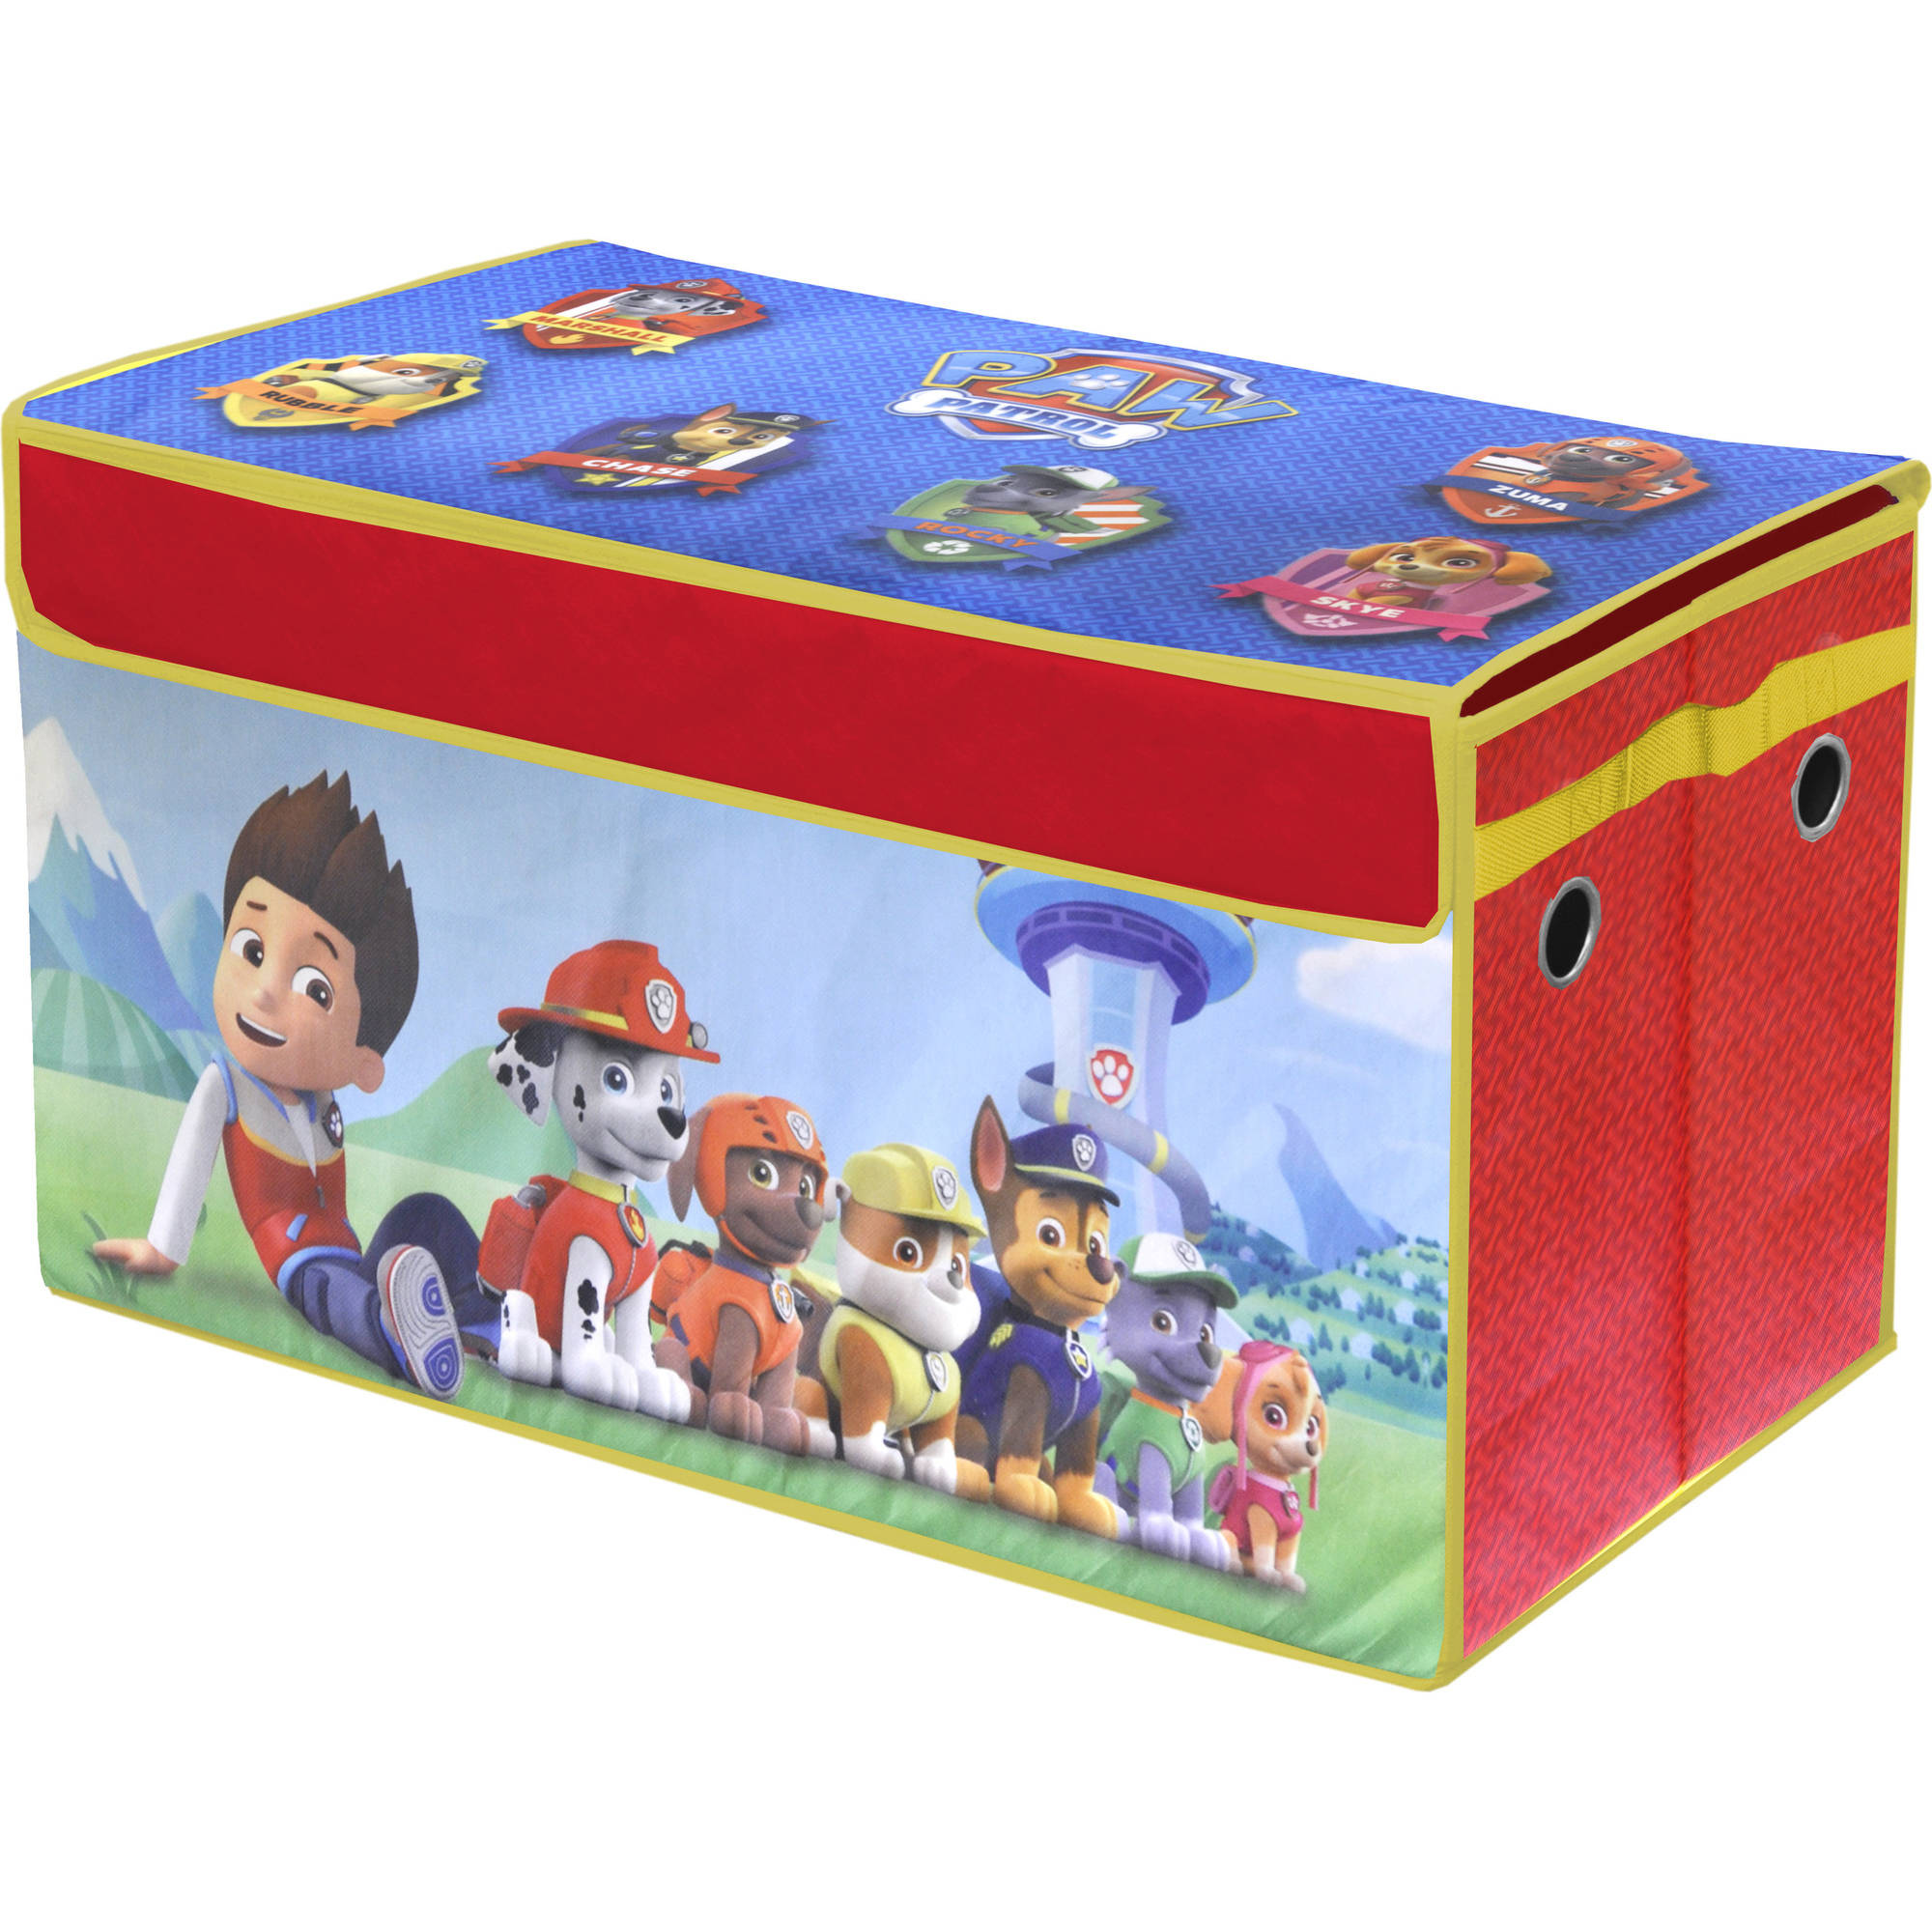 Nickelodeon PAW Patrol Oversized Collapsible Storage Trunk